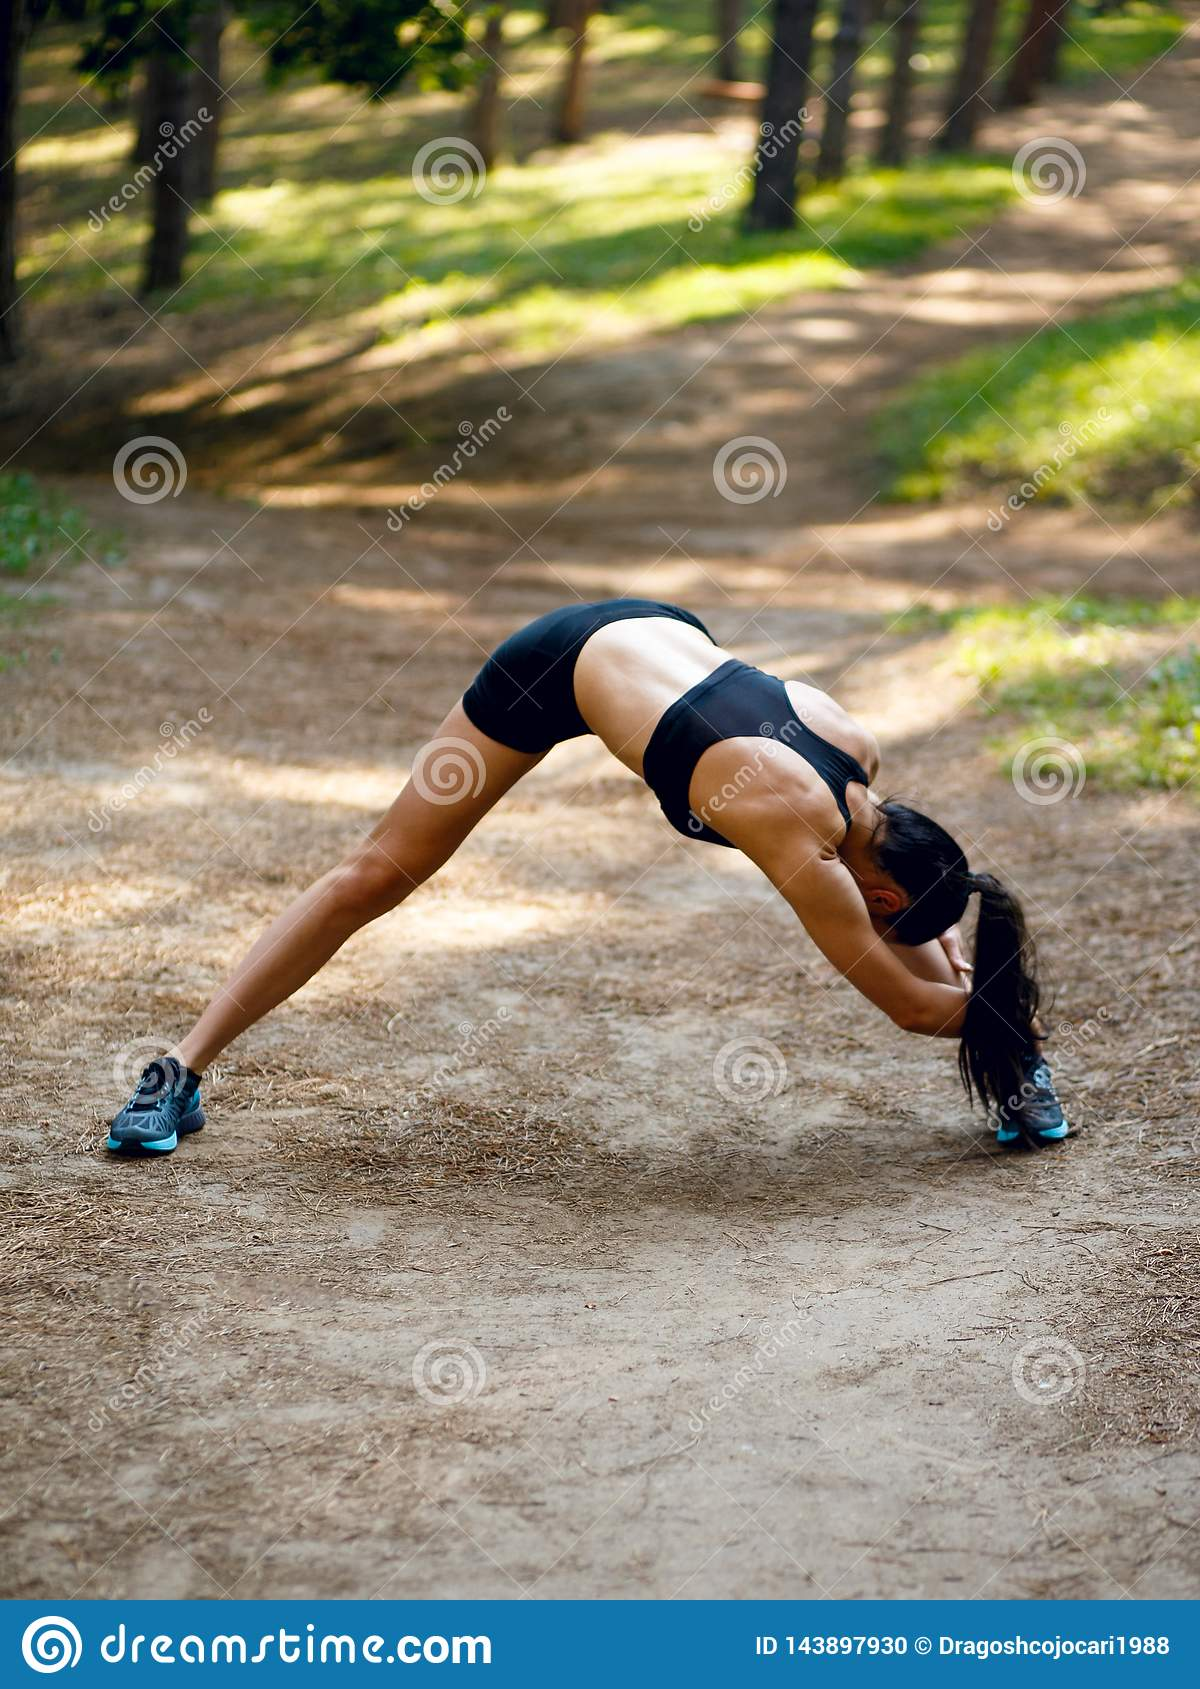 Active young woman workout outside, doing stretching exercises on legs and hands on the left side,  on park background